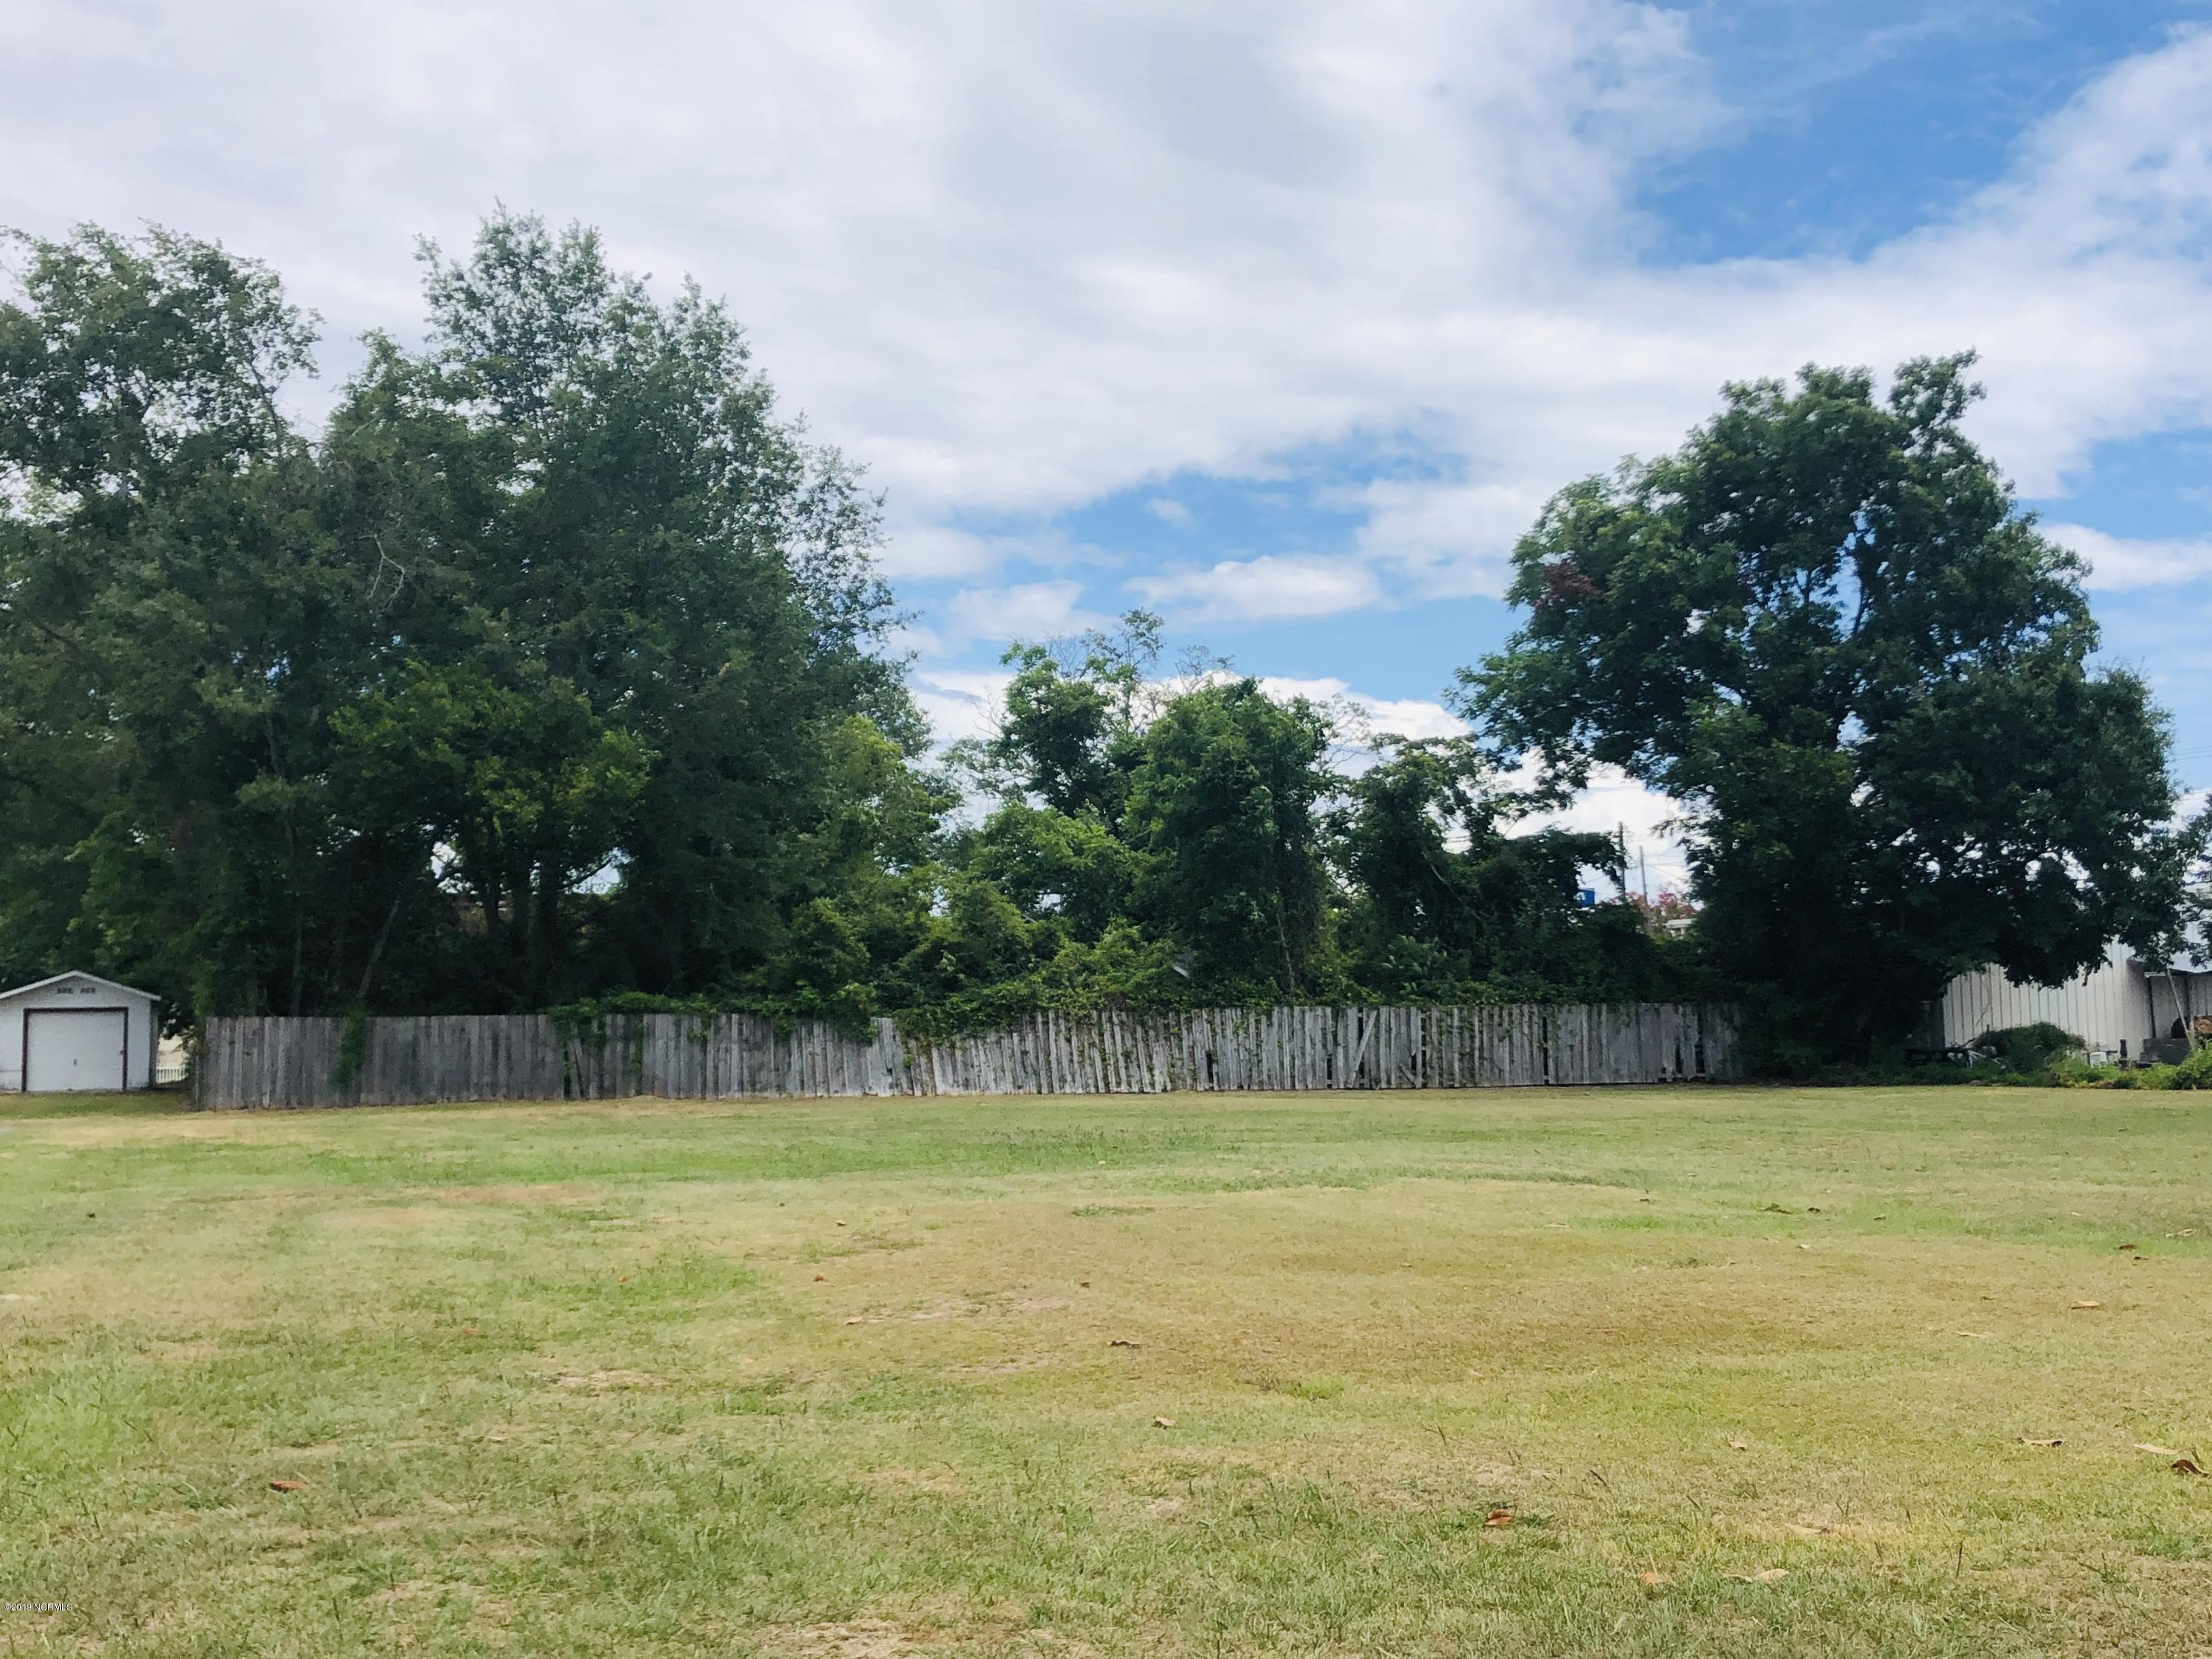 This is a great buildable lot(or 2!) in Jacksonville city limits. City roads and sewer, 60 feet of road frontage on each cleared lot, super convenient location. There are 2 lots for sale. Both are 0.21 acres. If you buy both, the combined asking price will be $55,000.